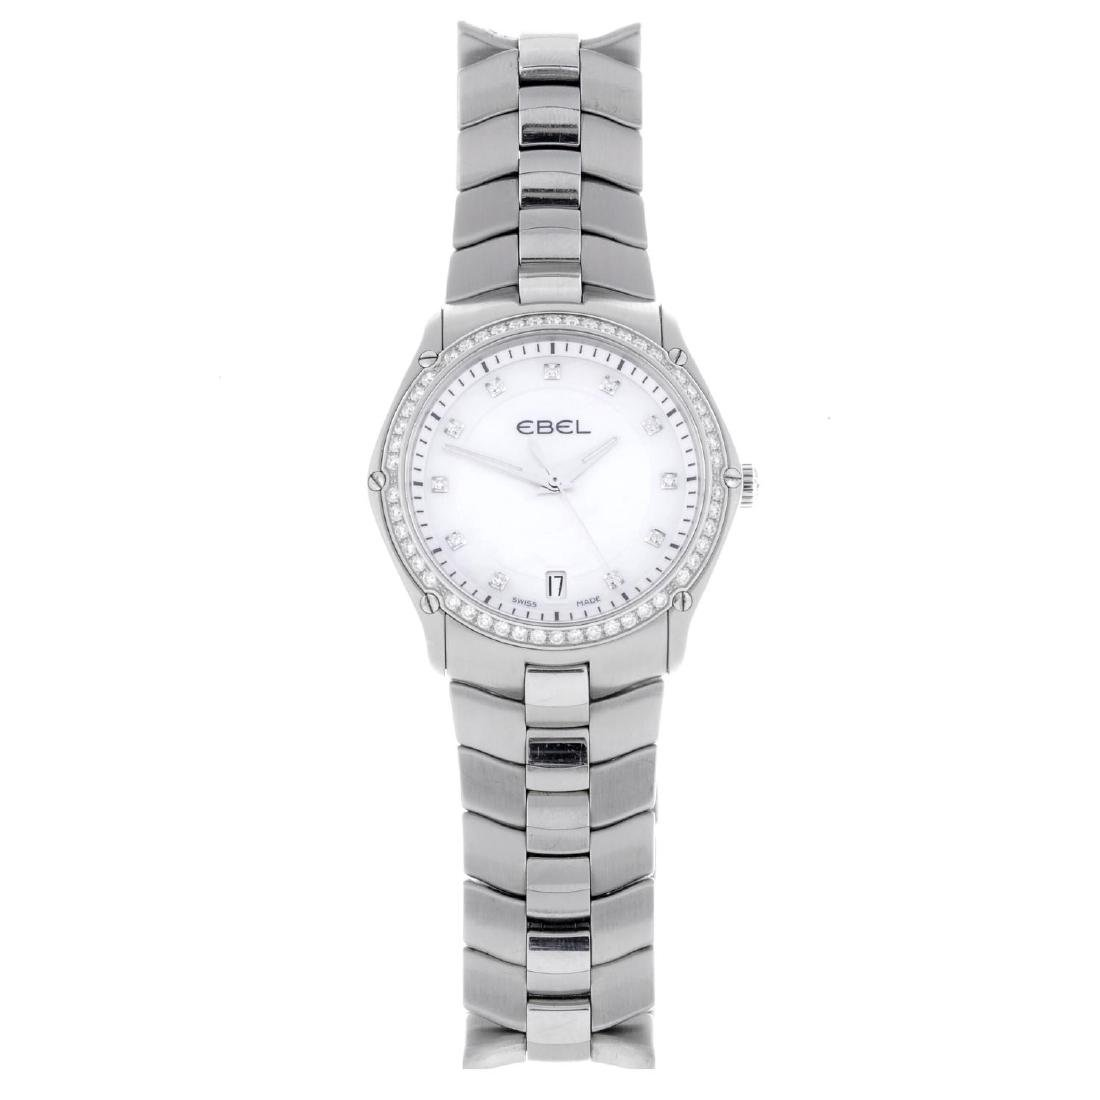 EBEL - a lady's Classic Sport bracelet watch. Stainless